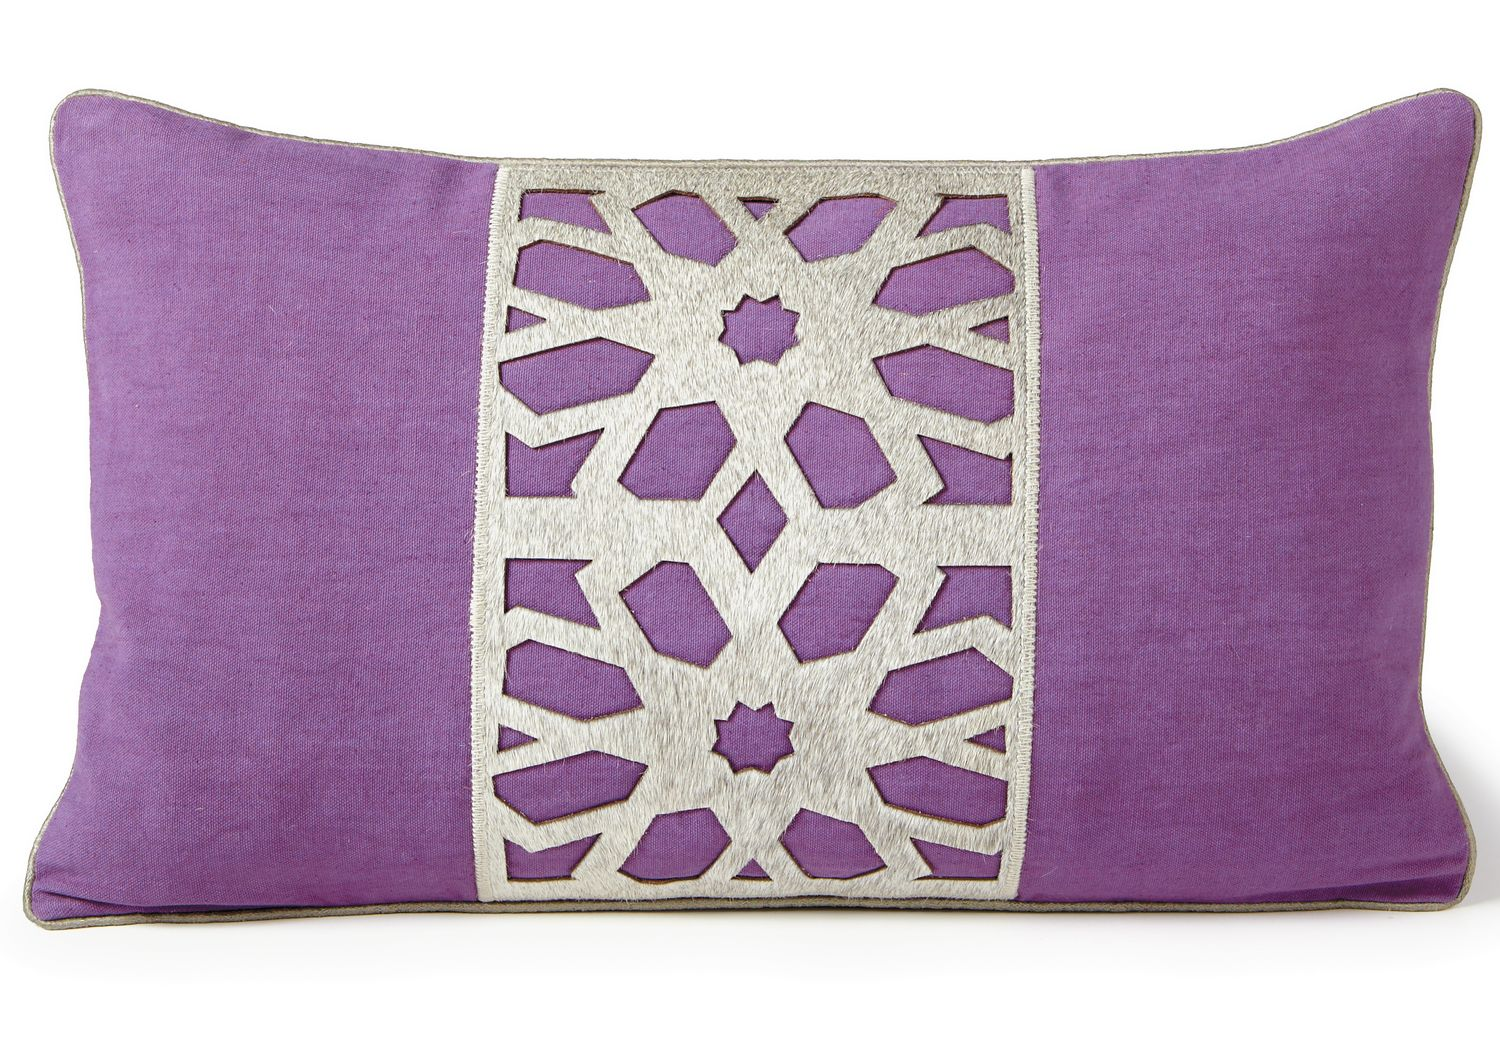 Fibre by Auskin Cowhide Flower Grape Decorative Pillows